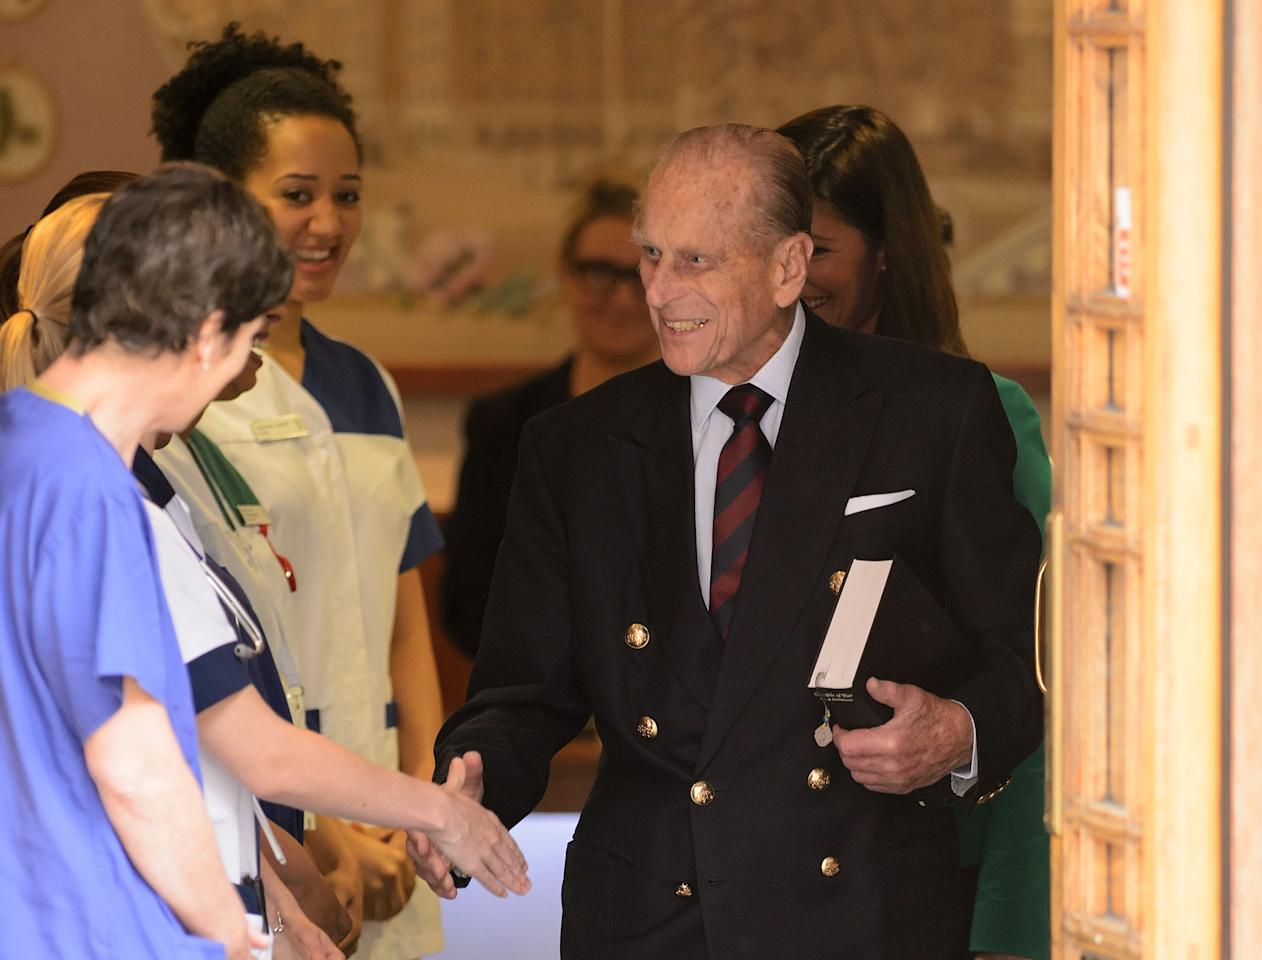 The Duke of Edinburgh thanks staff as he leaves the London Clinic in central London, 11 days after he was admitted for exploratory abdominal surgery.